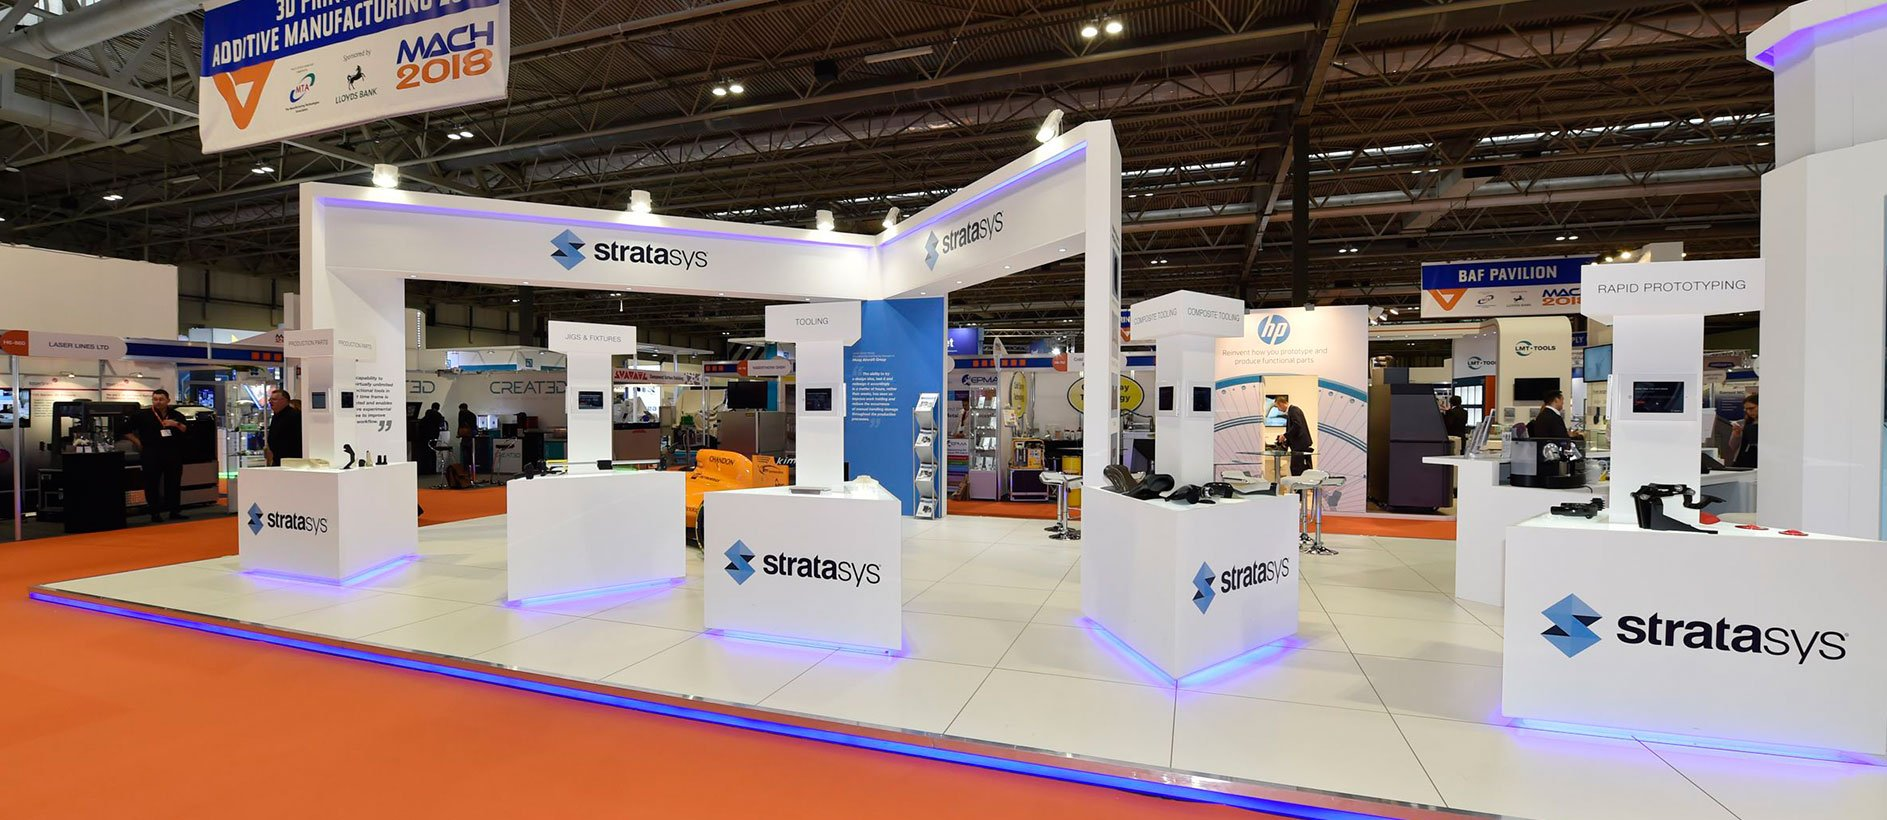 Stratasys exhibition graphic design